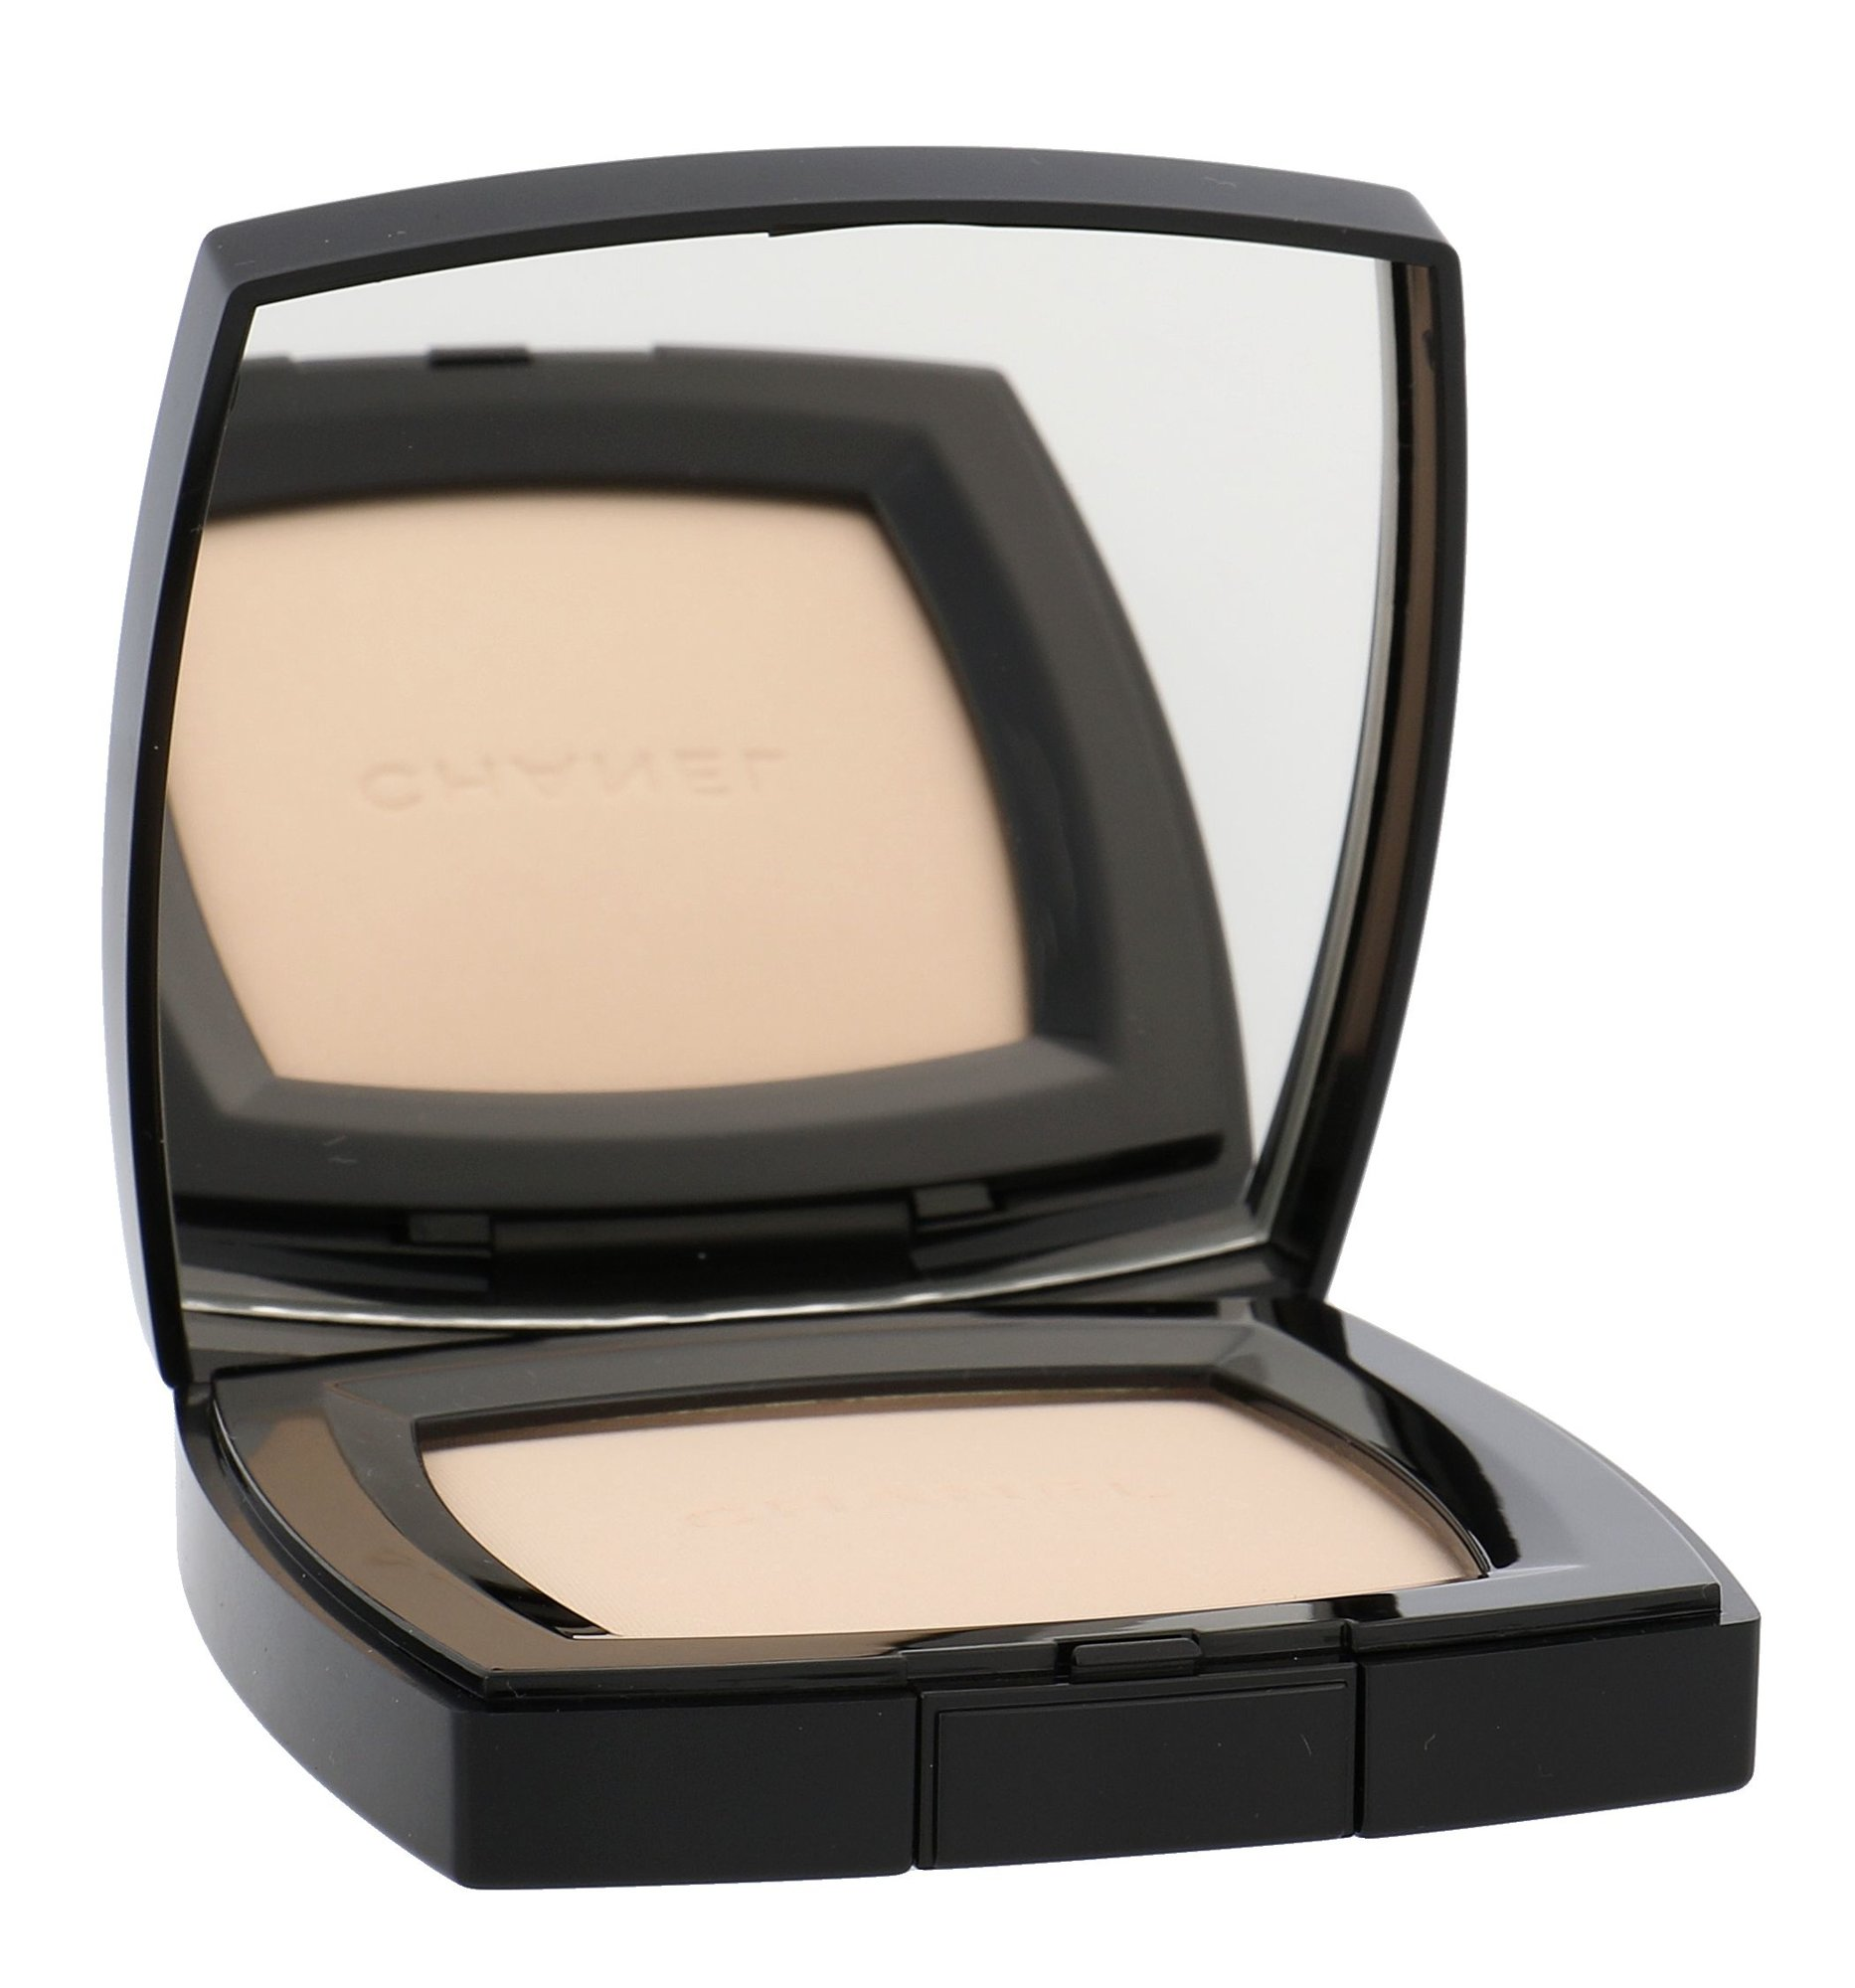 Chanel Poudre Universelle Compacte Cosmetic 15ml 20 Clair